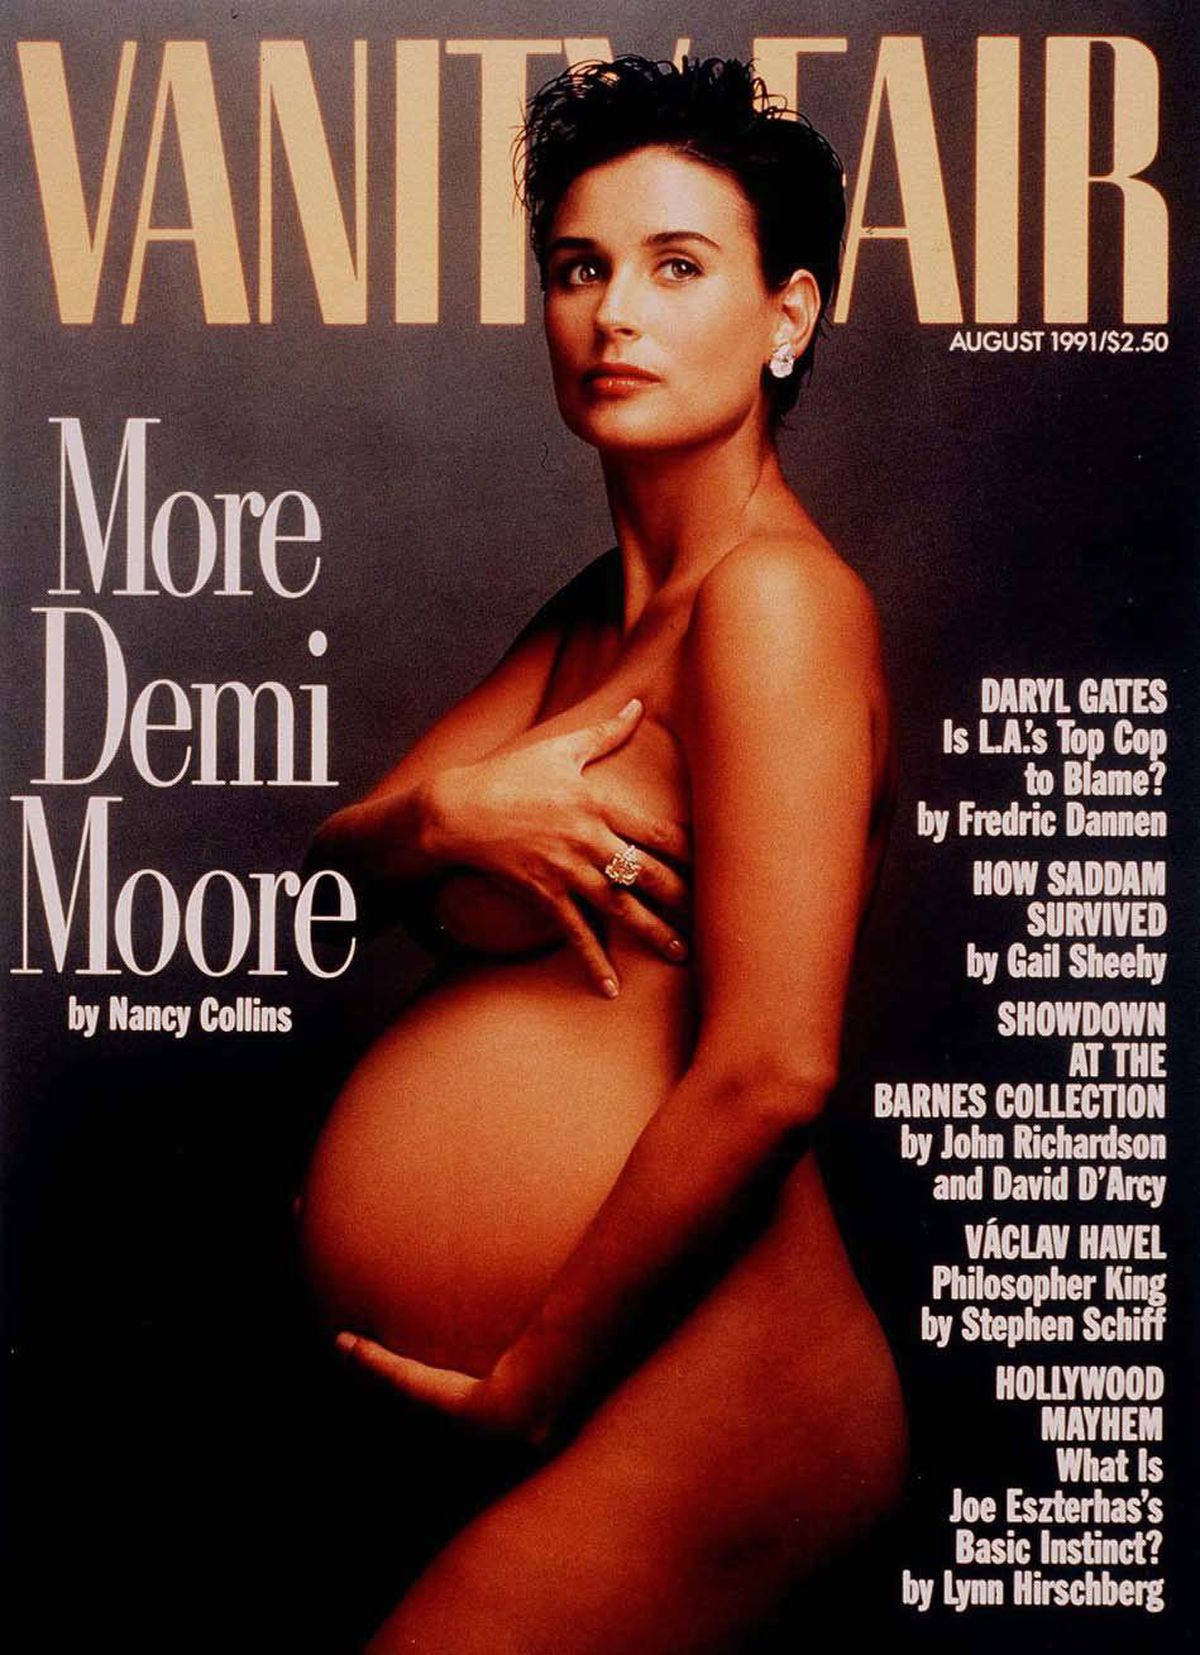 Our brief history begins in 1991, when a 28-year-old Demi Moore appeared naked and pregnant on the cover of the August issue of Vanity Fair. Annie Liebovitz took the infamous photo, editor Tina Brown published it, and modern celebrity gestation was never the same again.